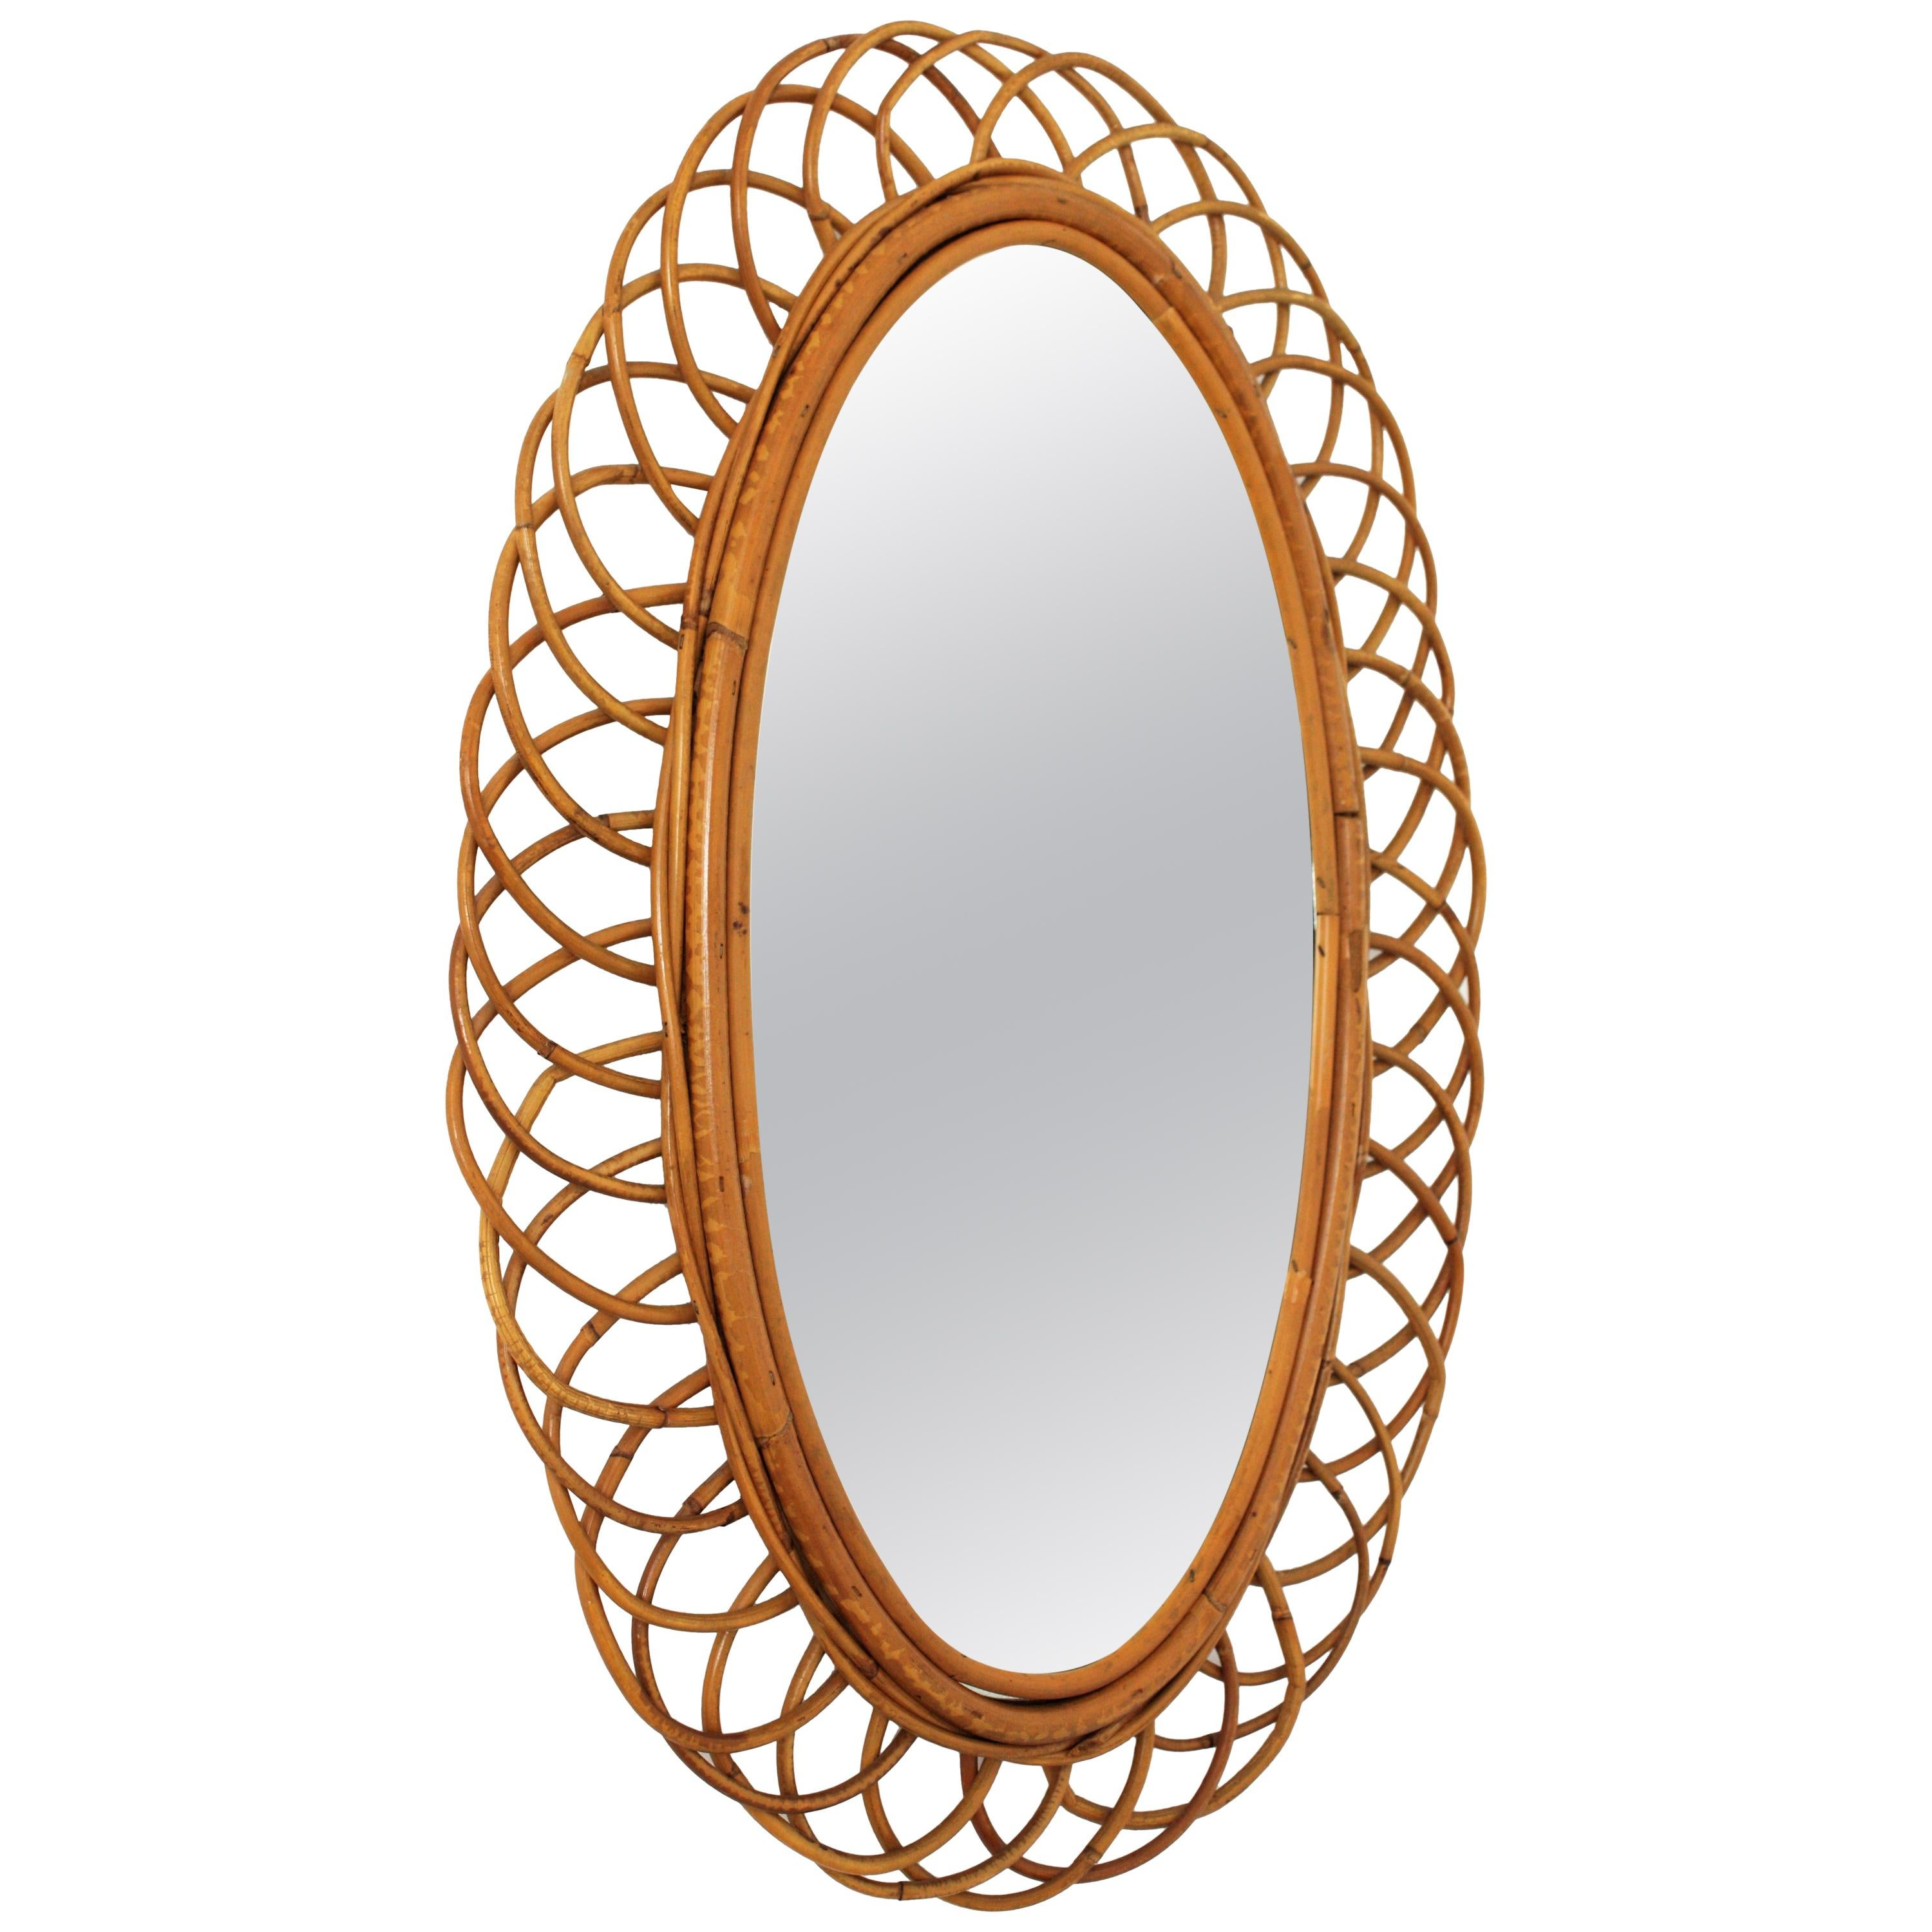 Rattan and Bamboo Oval Wall Mirror, Spain, 1960s